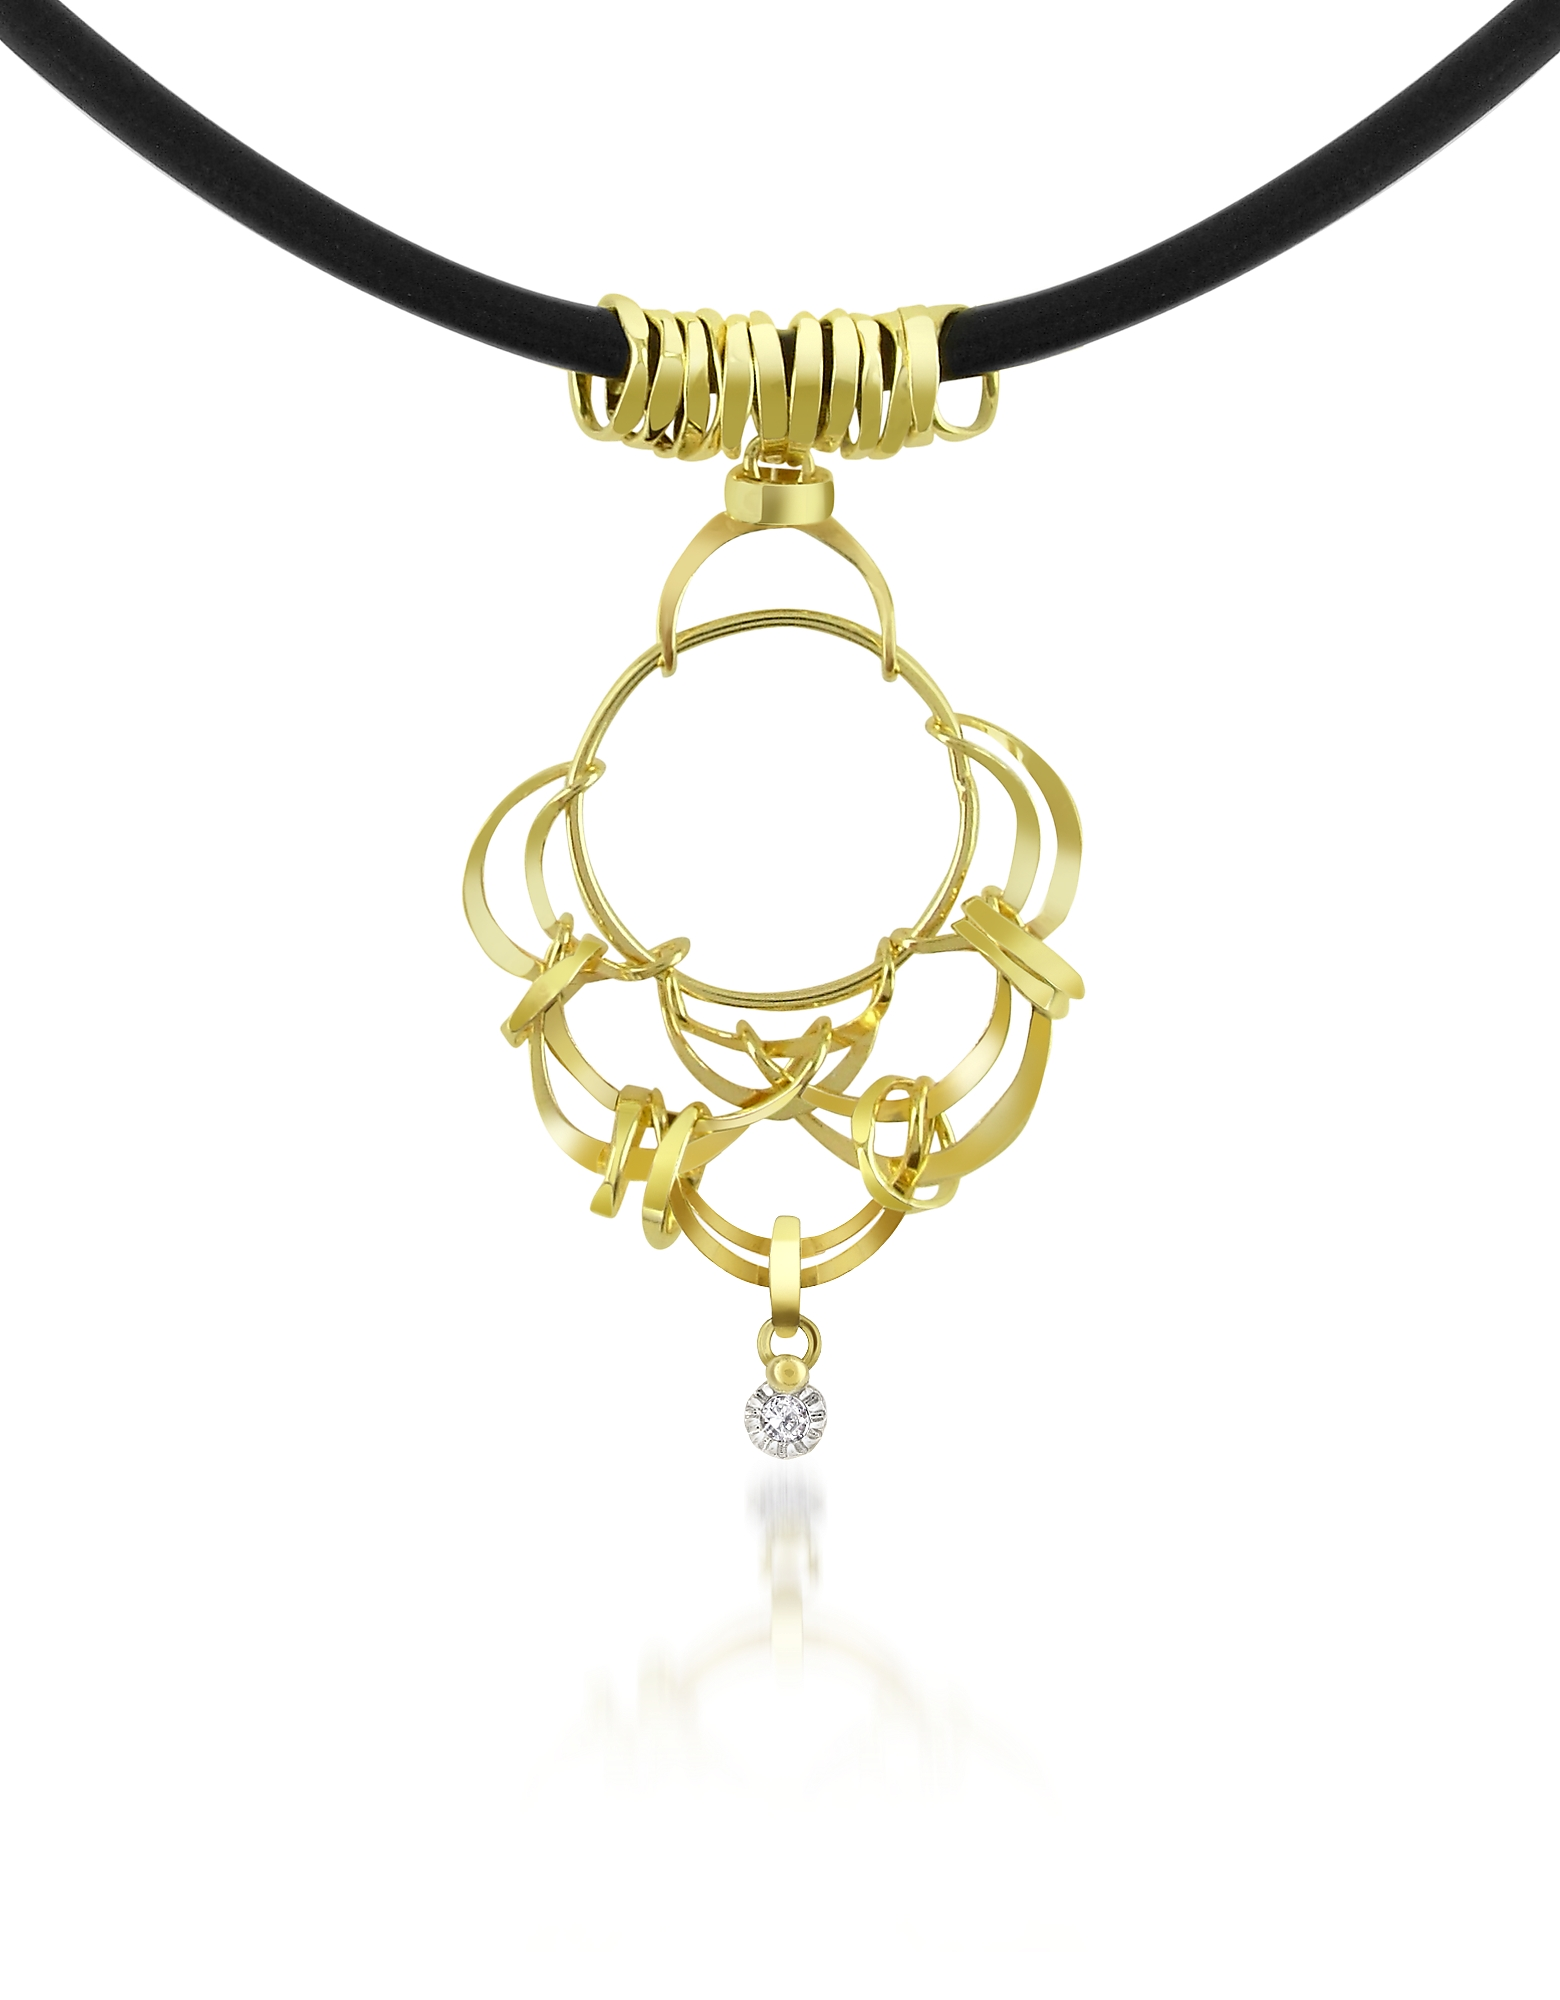 Orlando Orlandini Necklaces, Scintille - Diamond Drop 18K Yellow Gold Pendant Necklace